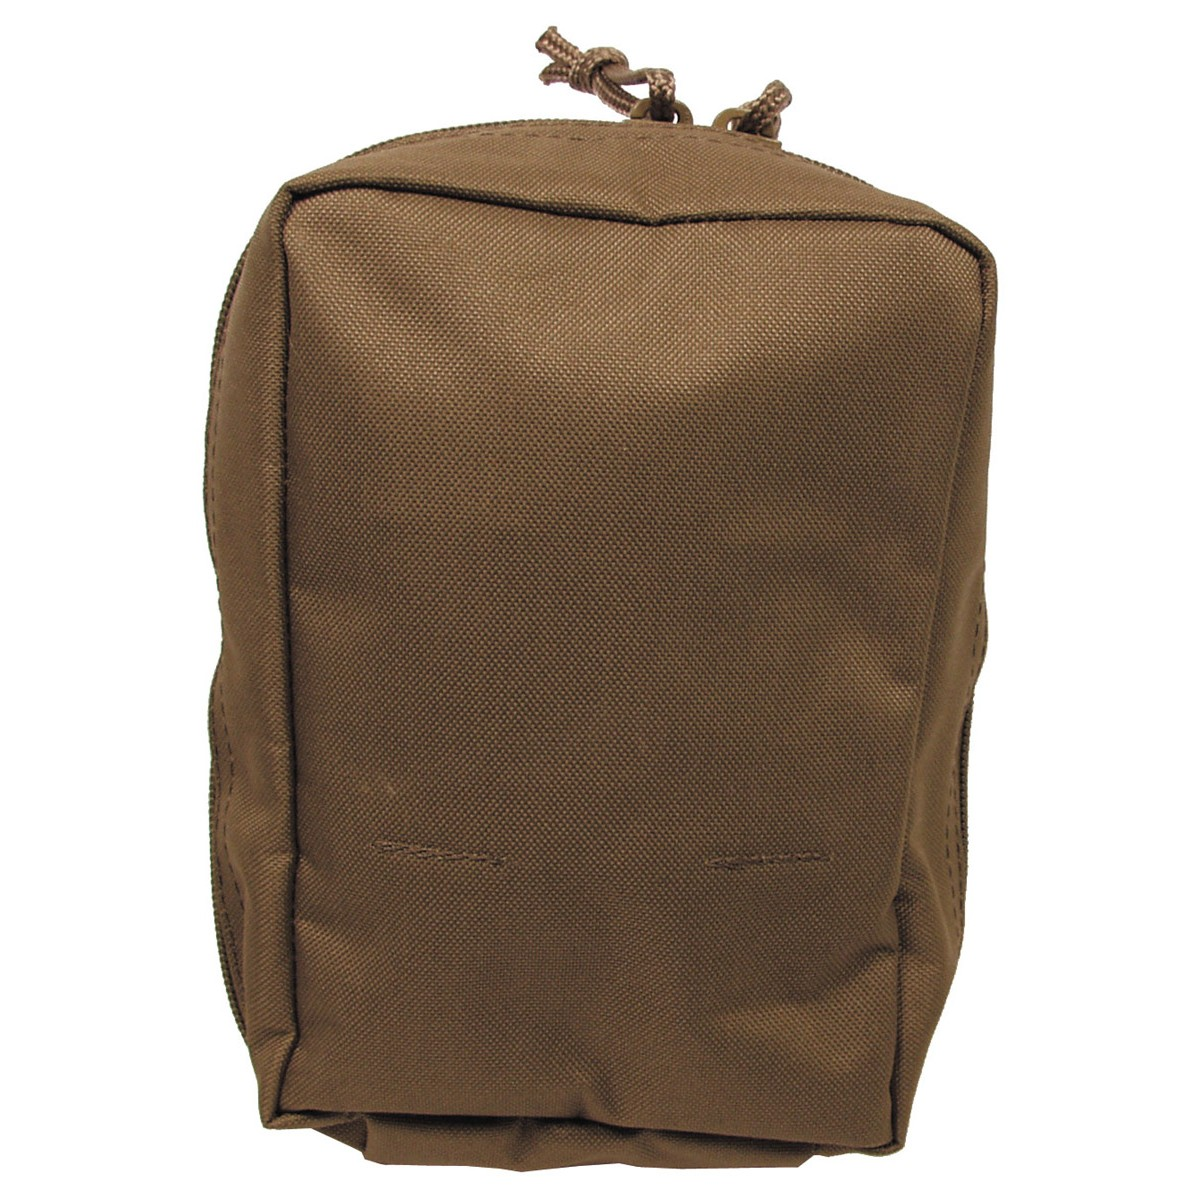 Tactical Utility Mollle Small Pouch - Coyote